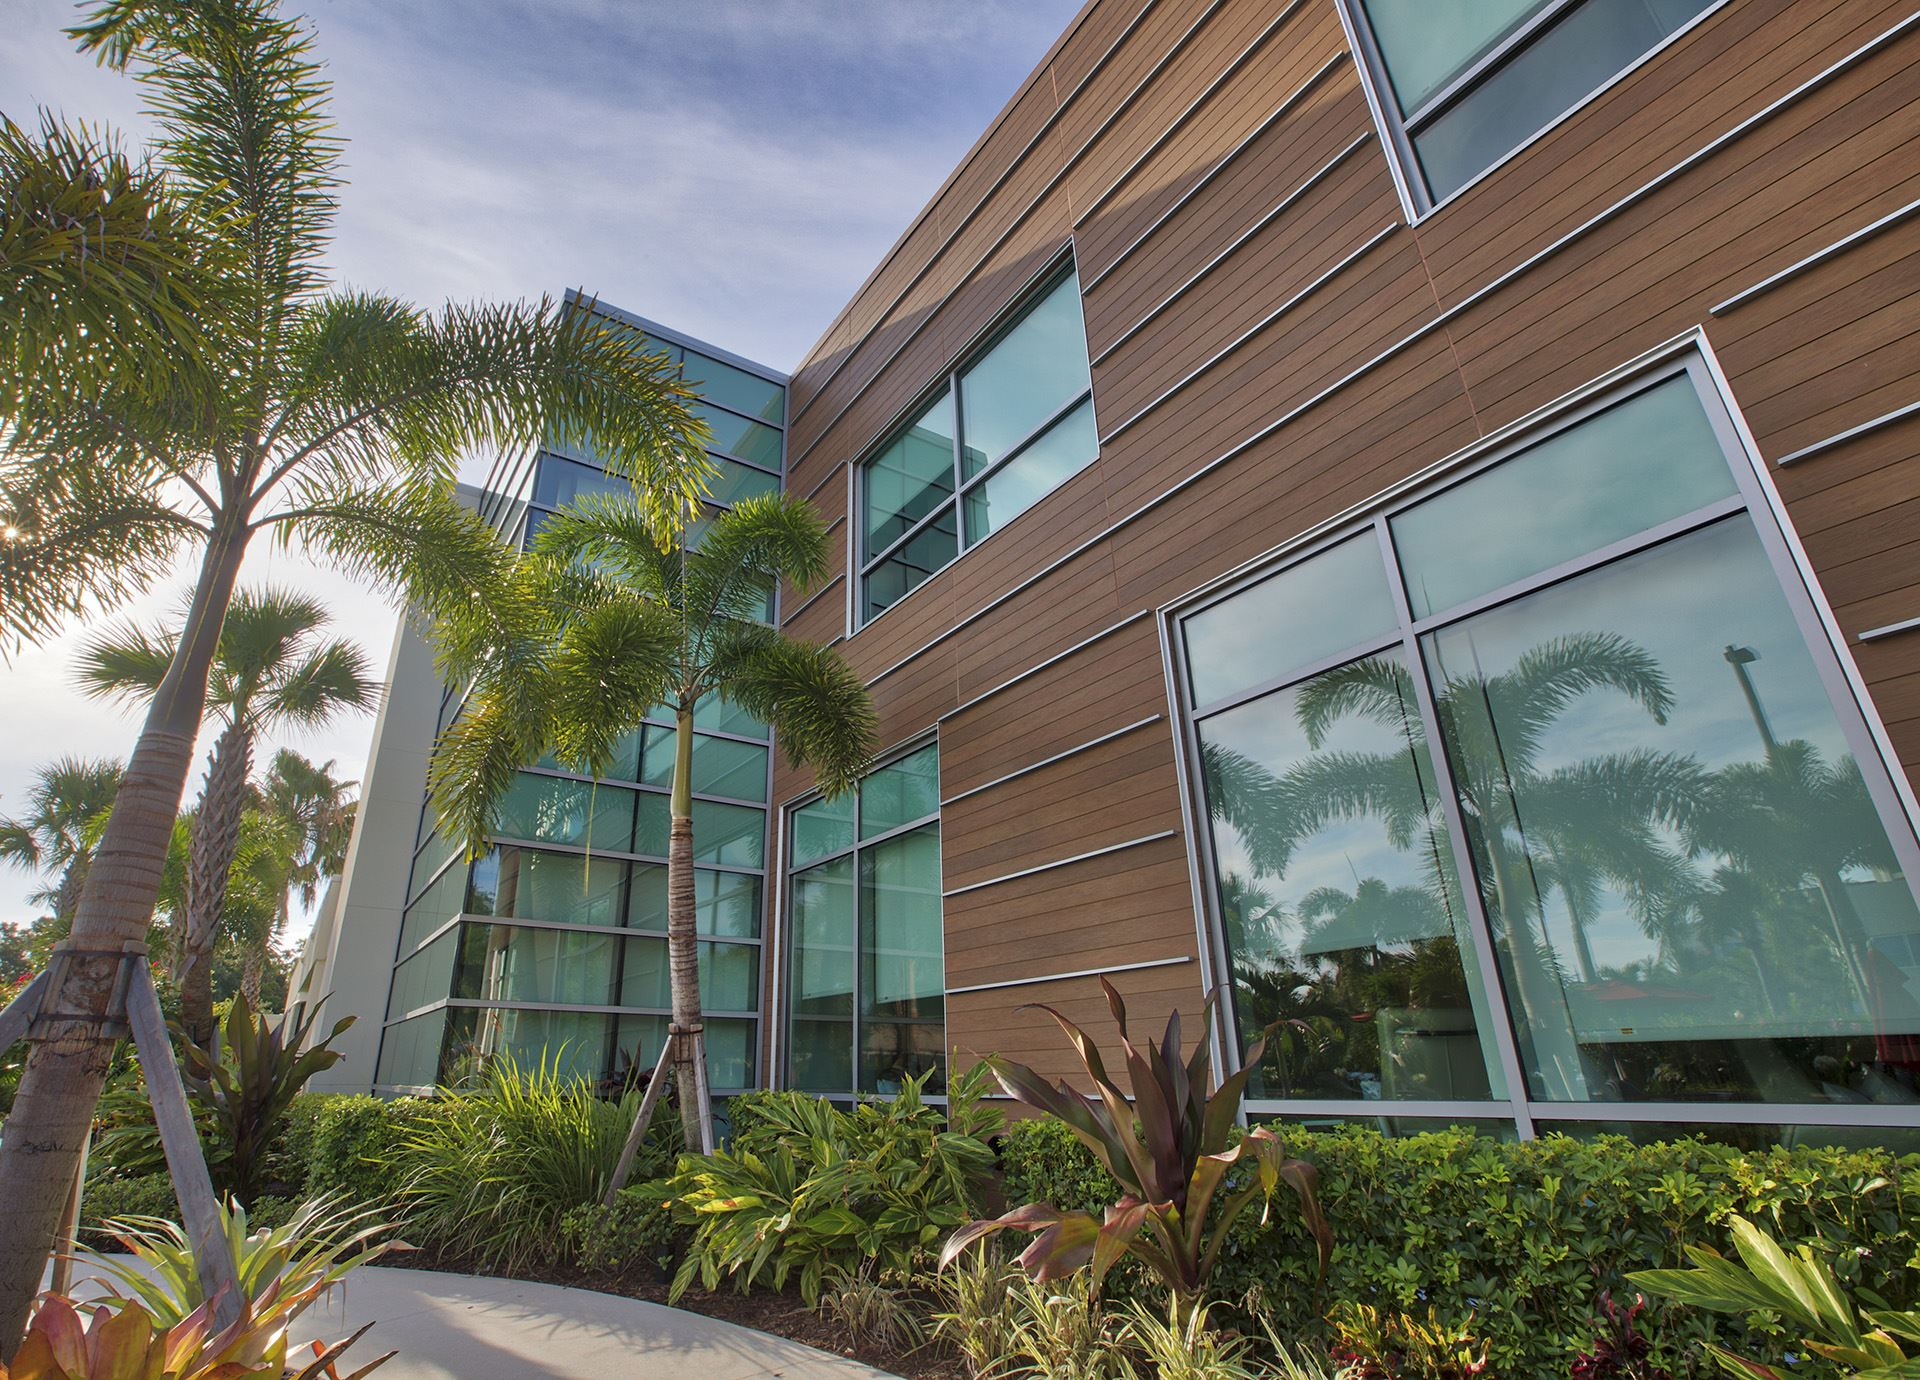 Scully-Welsh Cancer Center in Vero Beach Florida